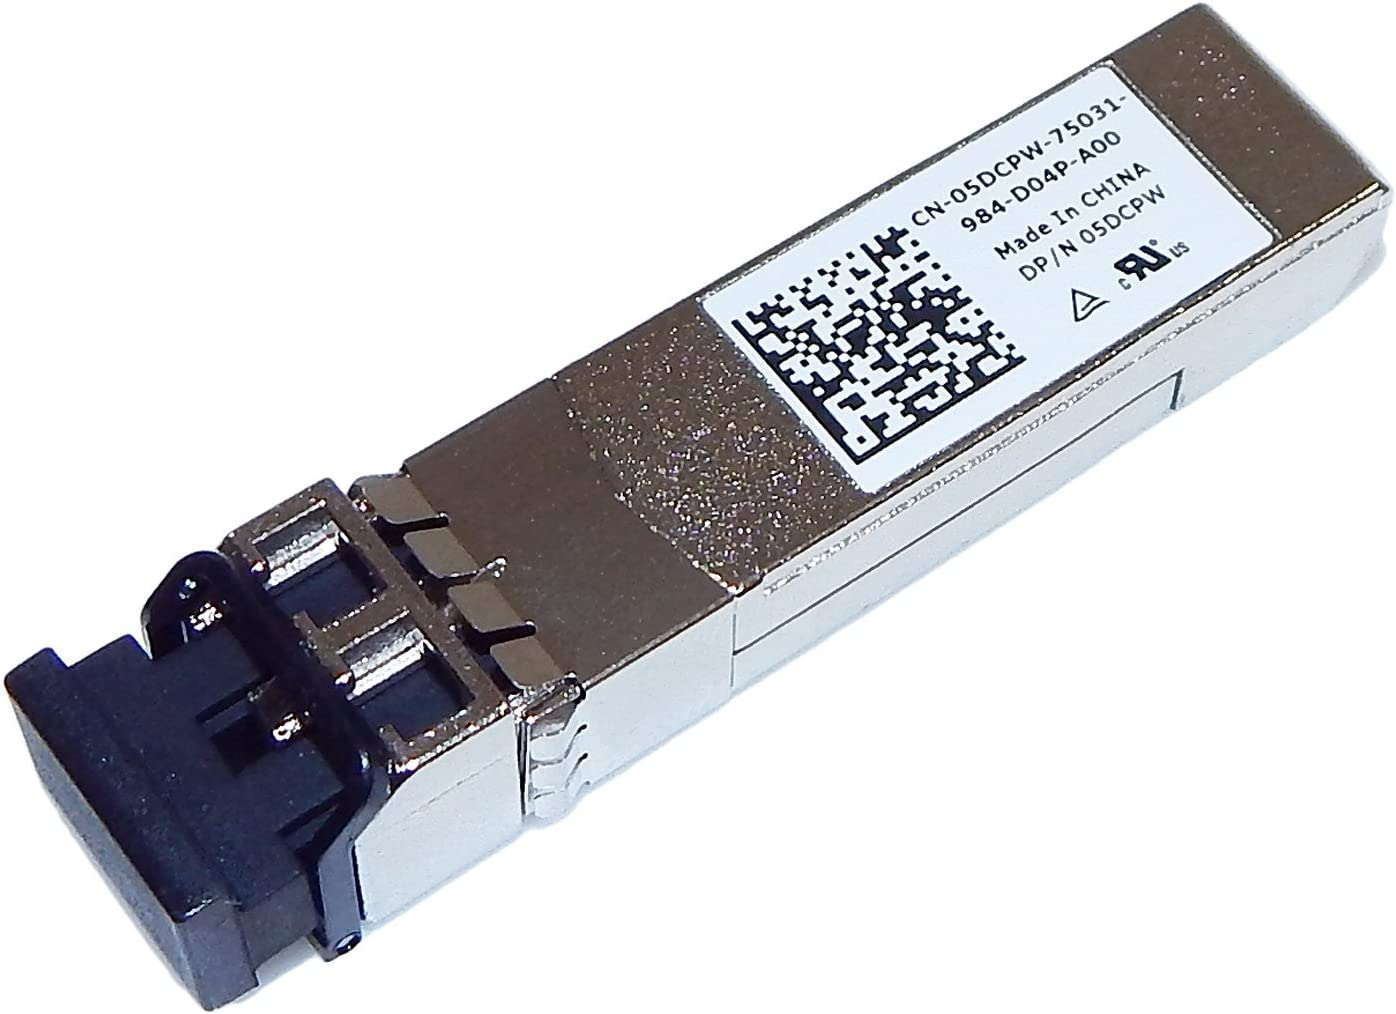 Dell 10G SFP+ LRM GBIC Transceiver 5DCPW